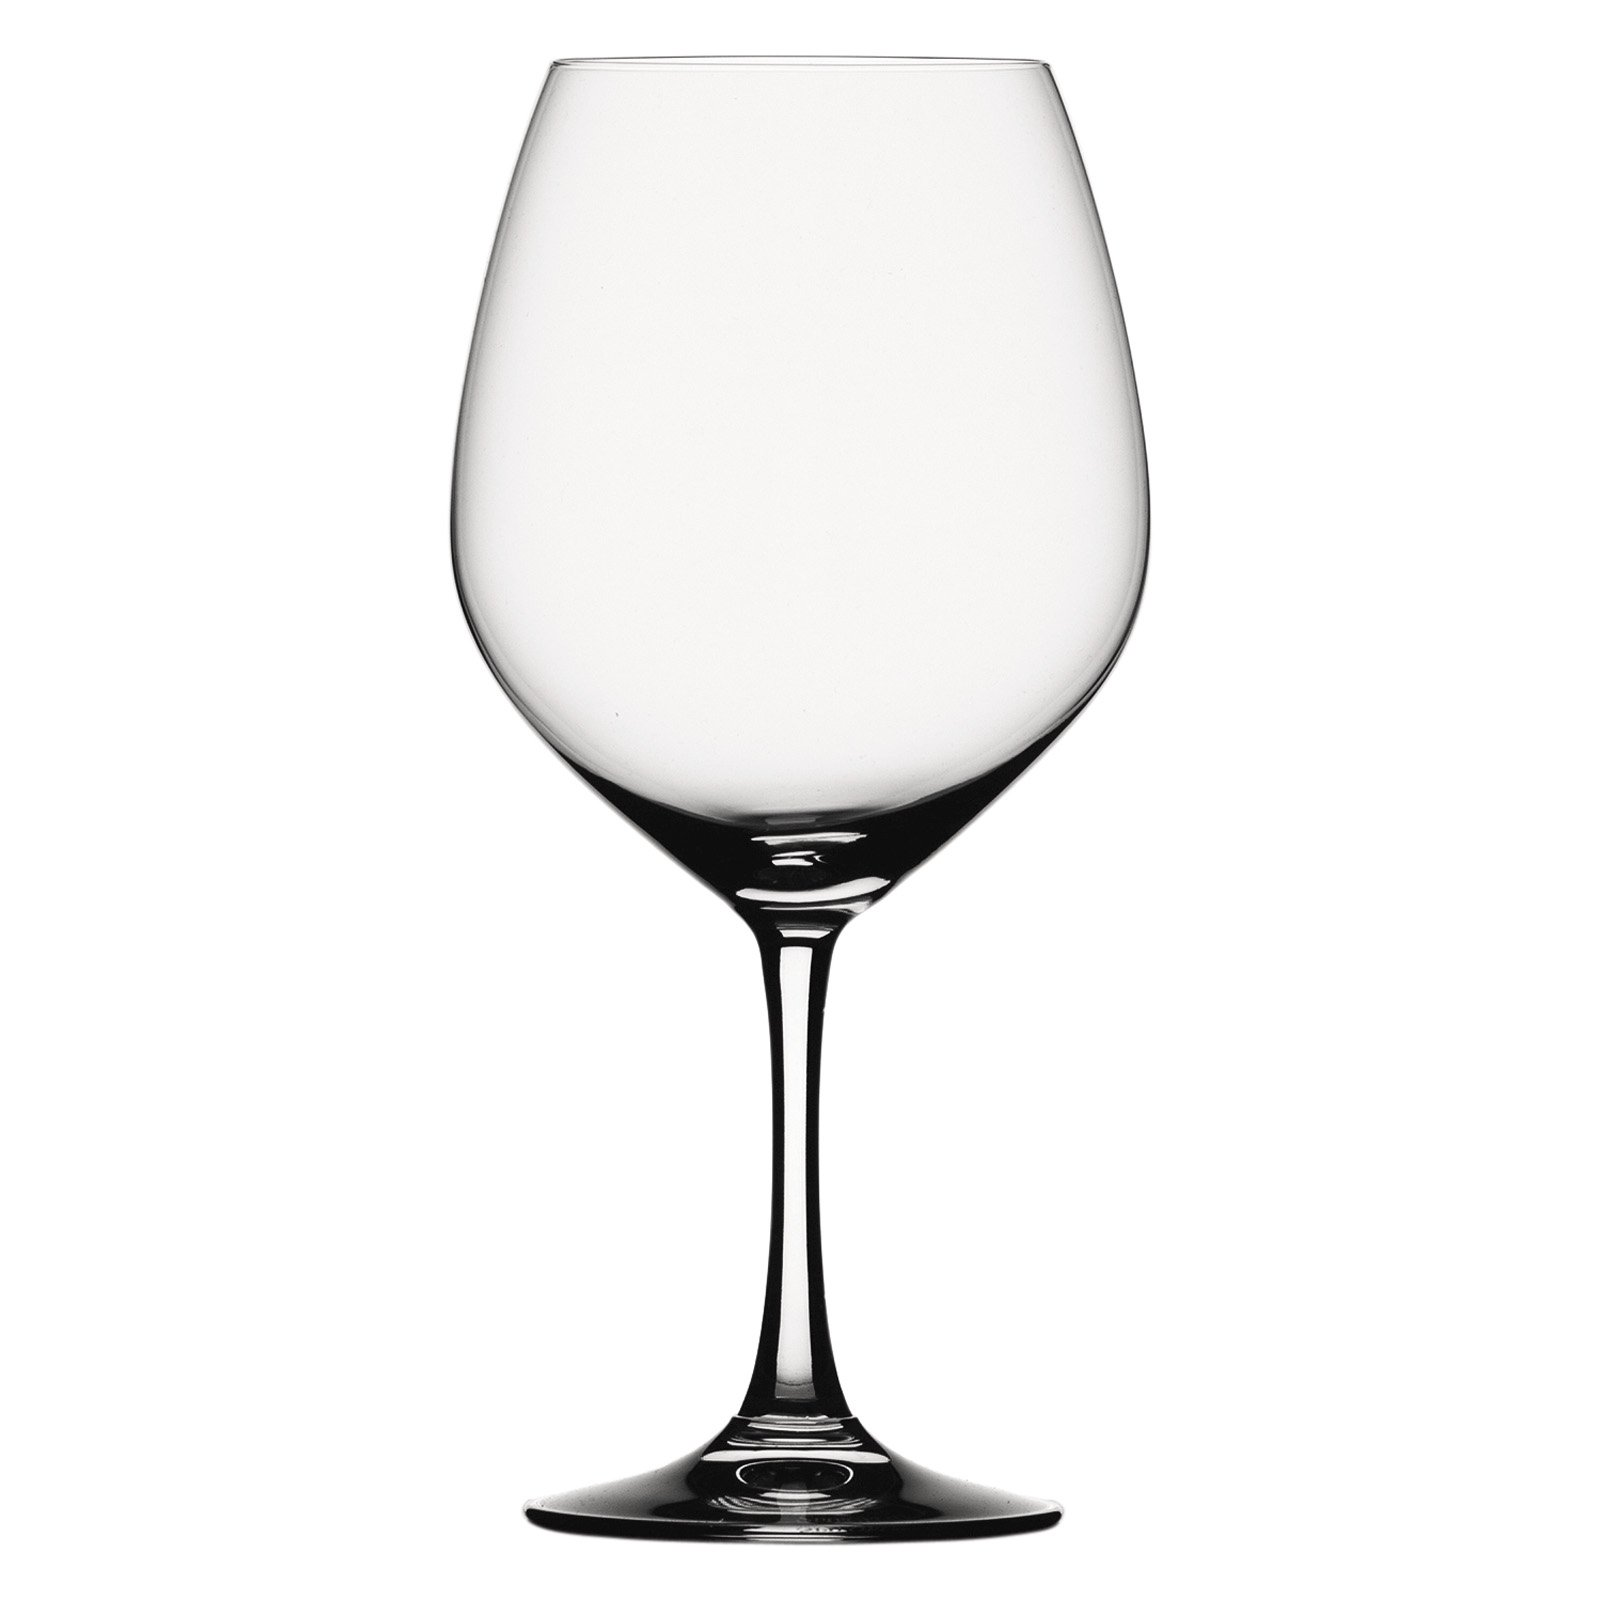 Spiegelau Vino Grande Burgundy Glass Set of 4 by Spiegelau